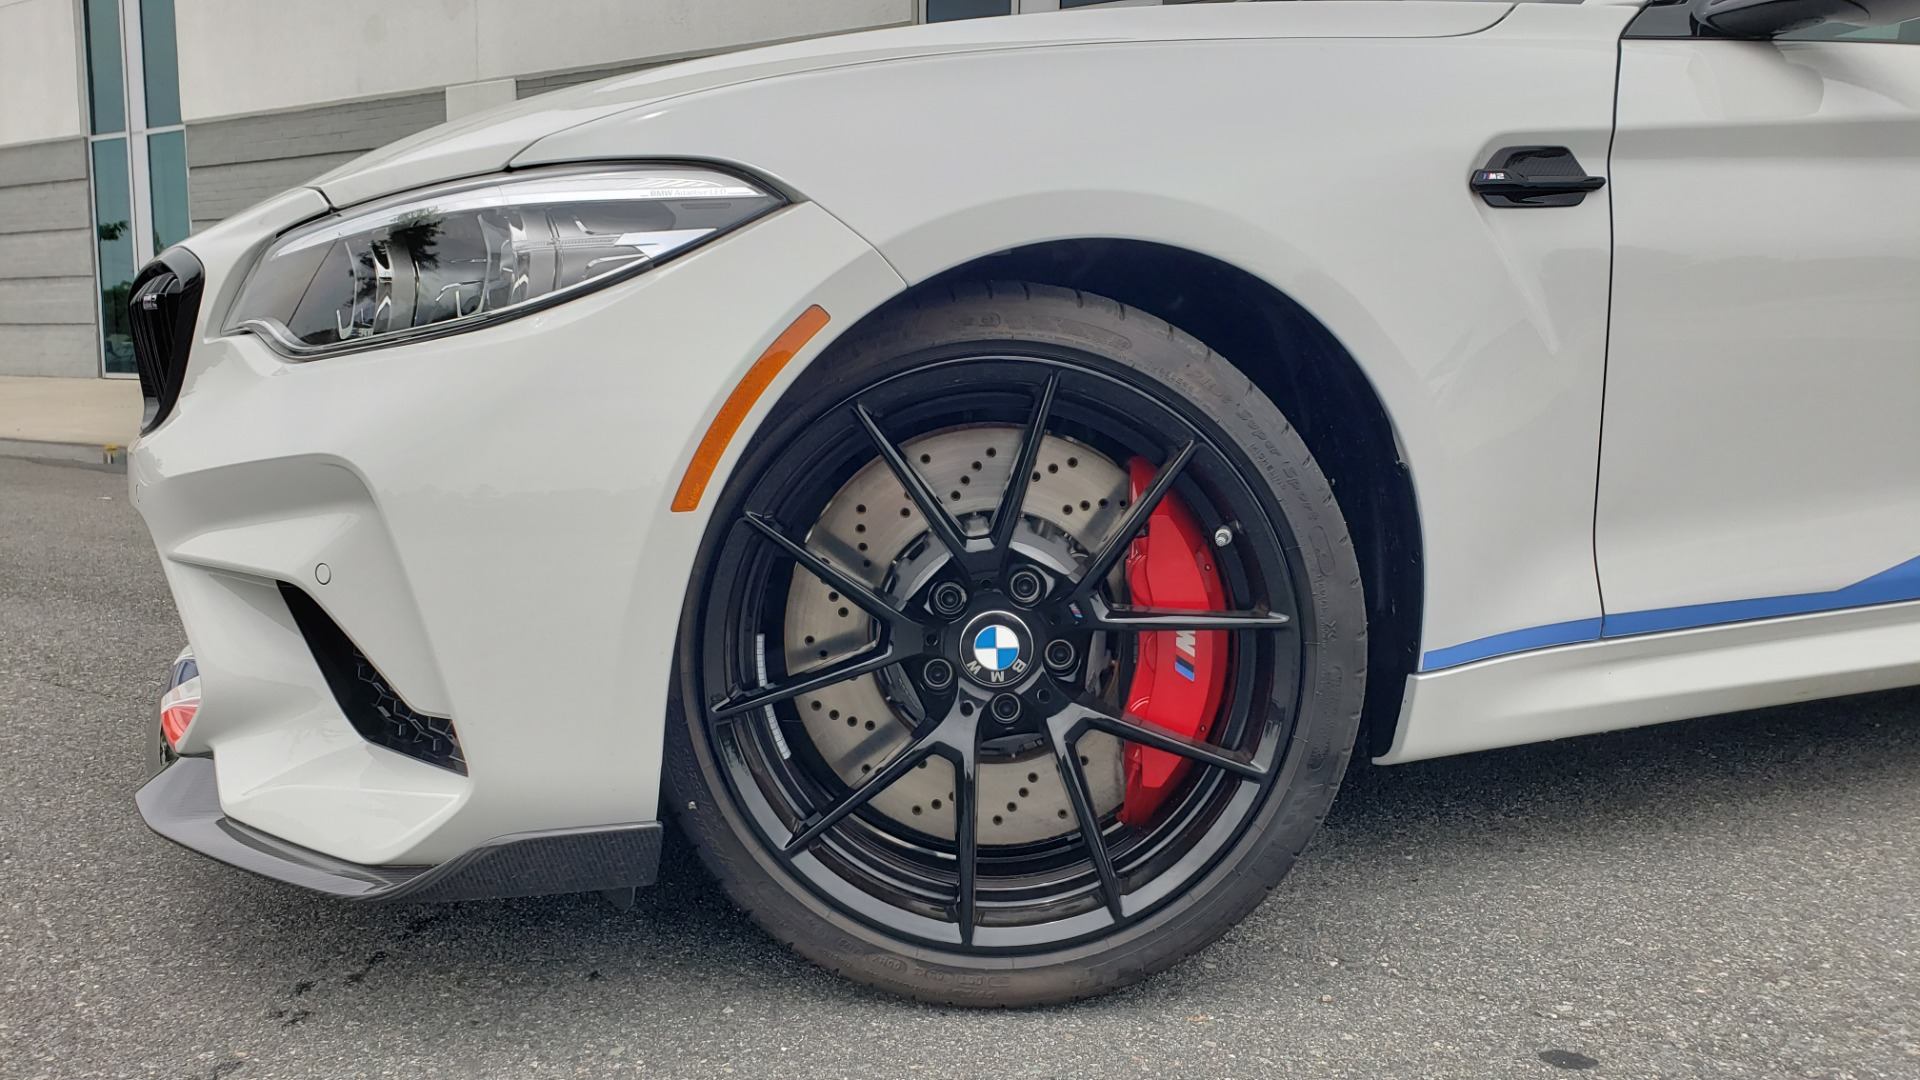 Used 2020 BMW M2 CS COMPETITION 405HP / COUPE / MANUAL / NAV / H/K SOUND / REARVIEW for sale $105,995 at Formula Imports in Charlotte NC 28227 24